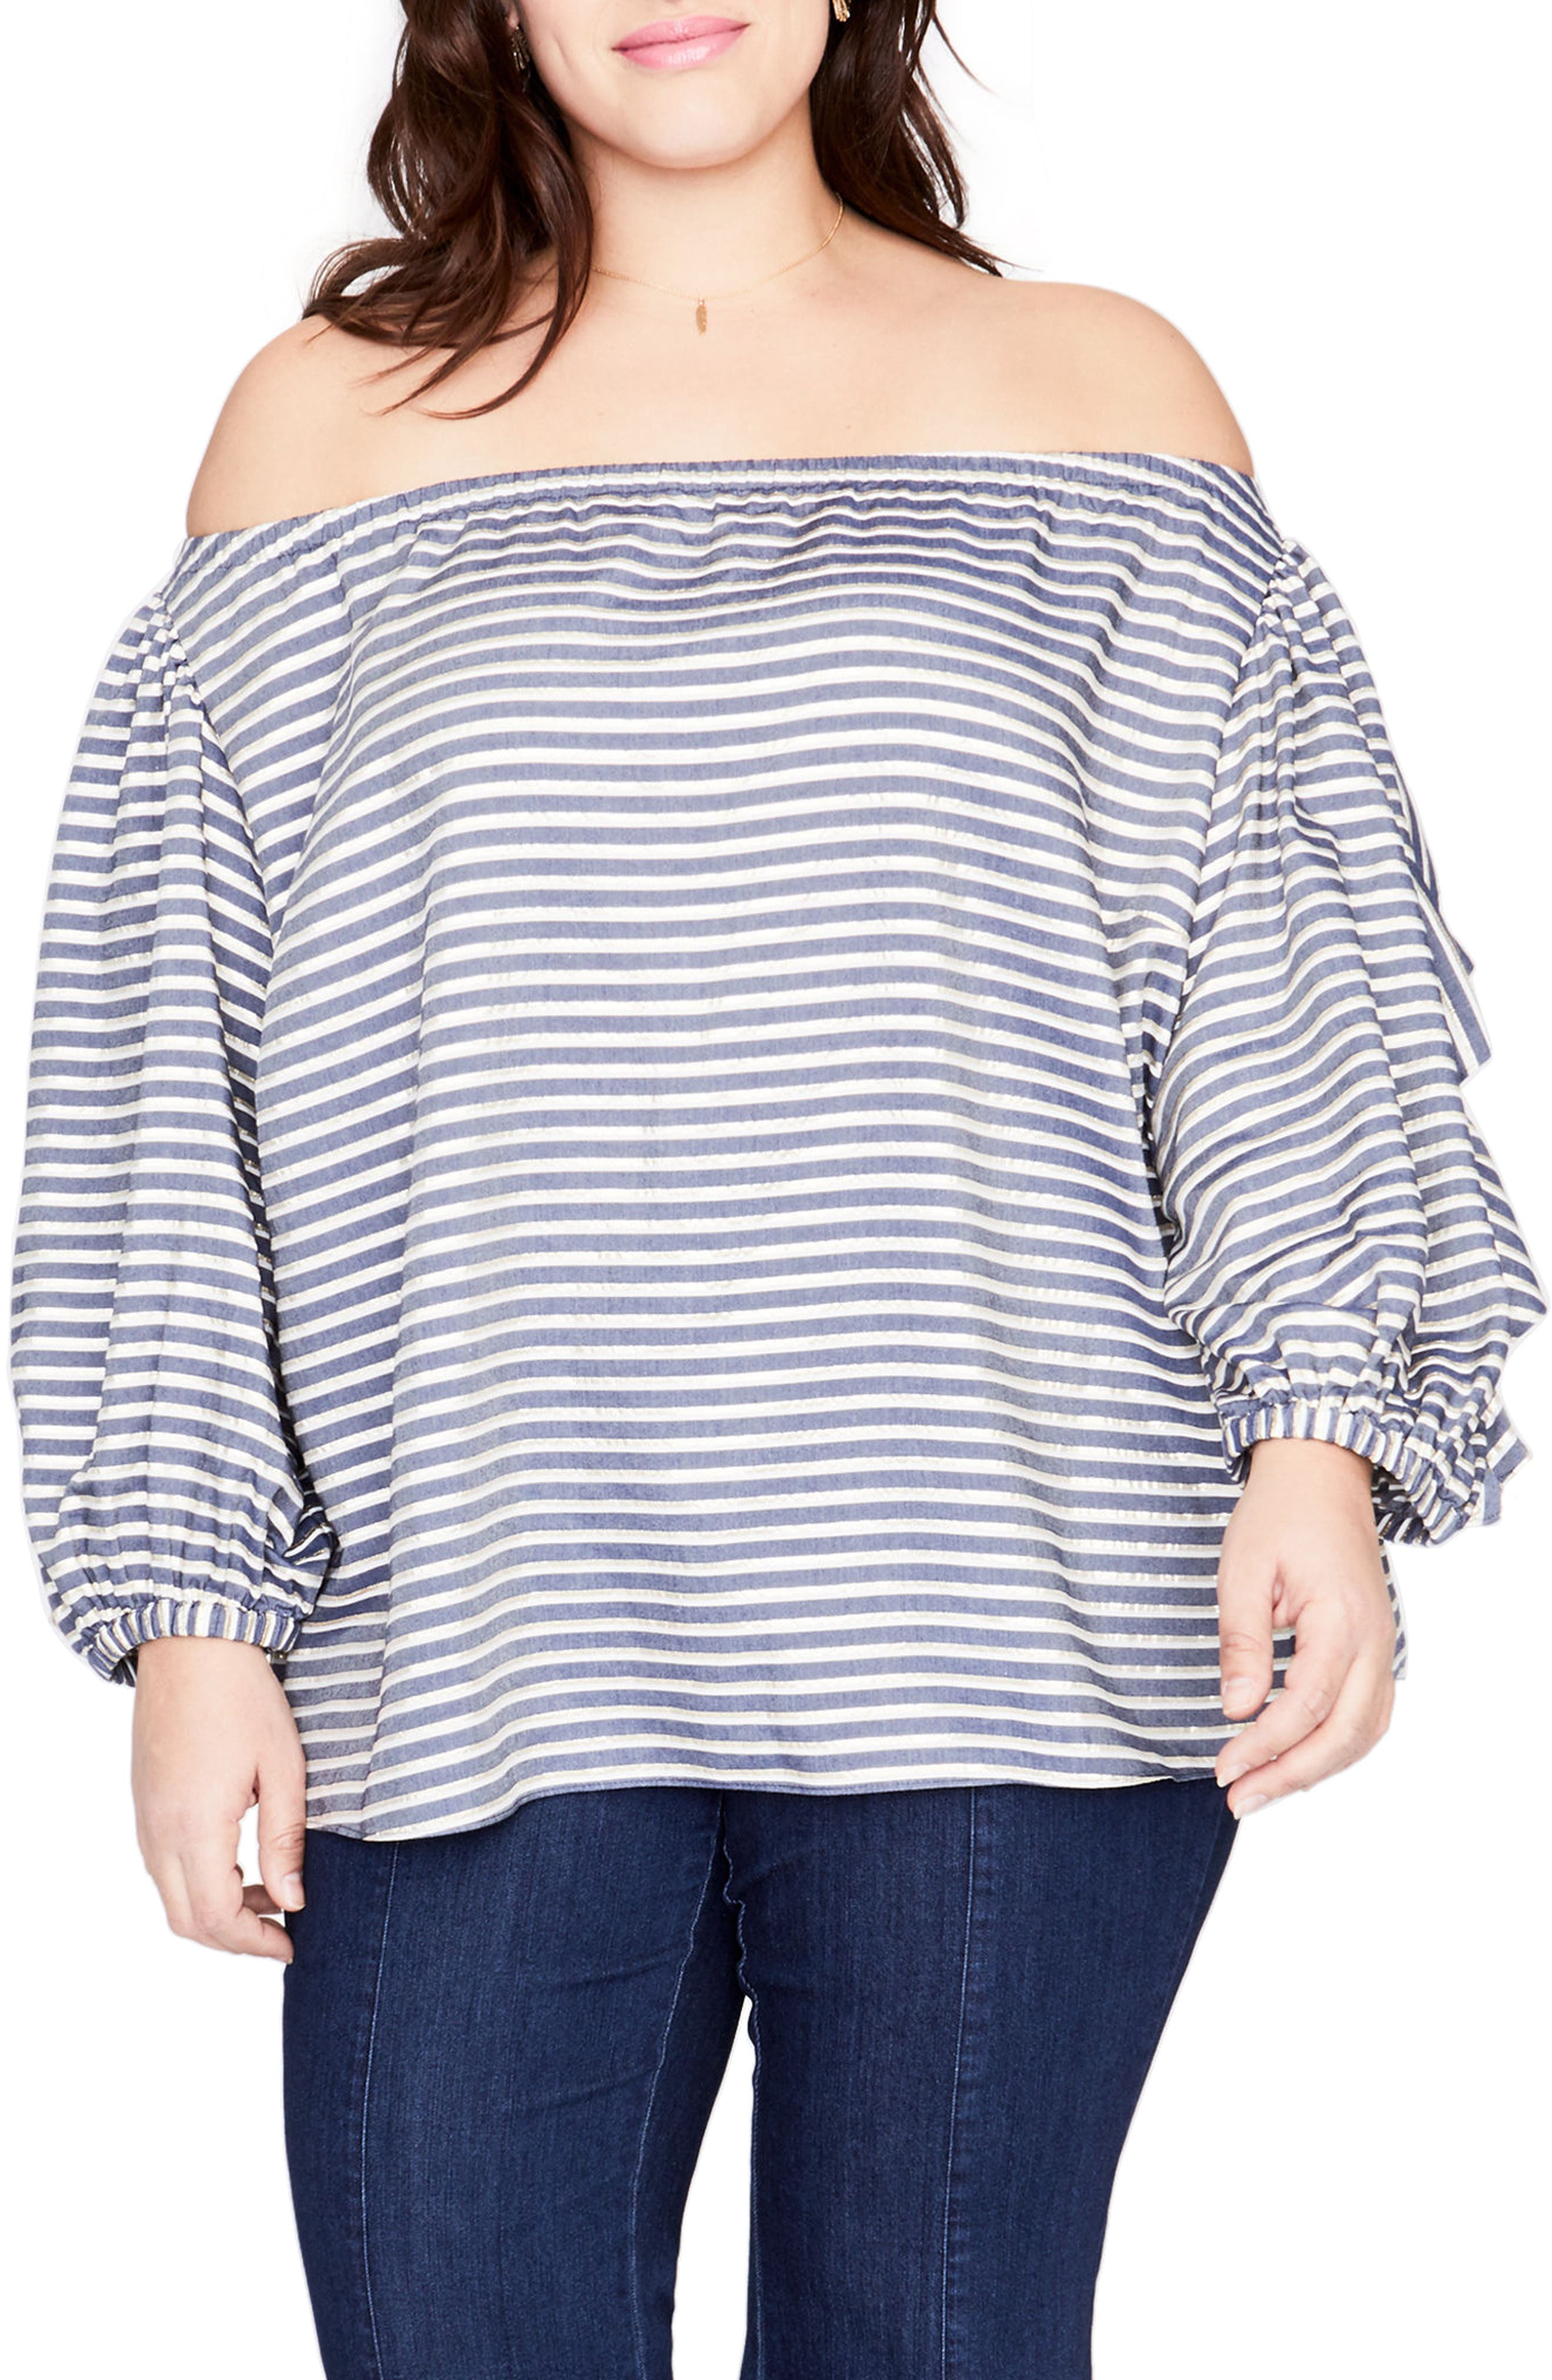 Ruffle Sleeve Stripe Off the Shoulder Top,                             Main thumbnail 1, color,                             TRUE NAVY COMBO